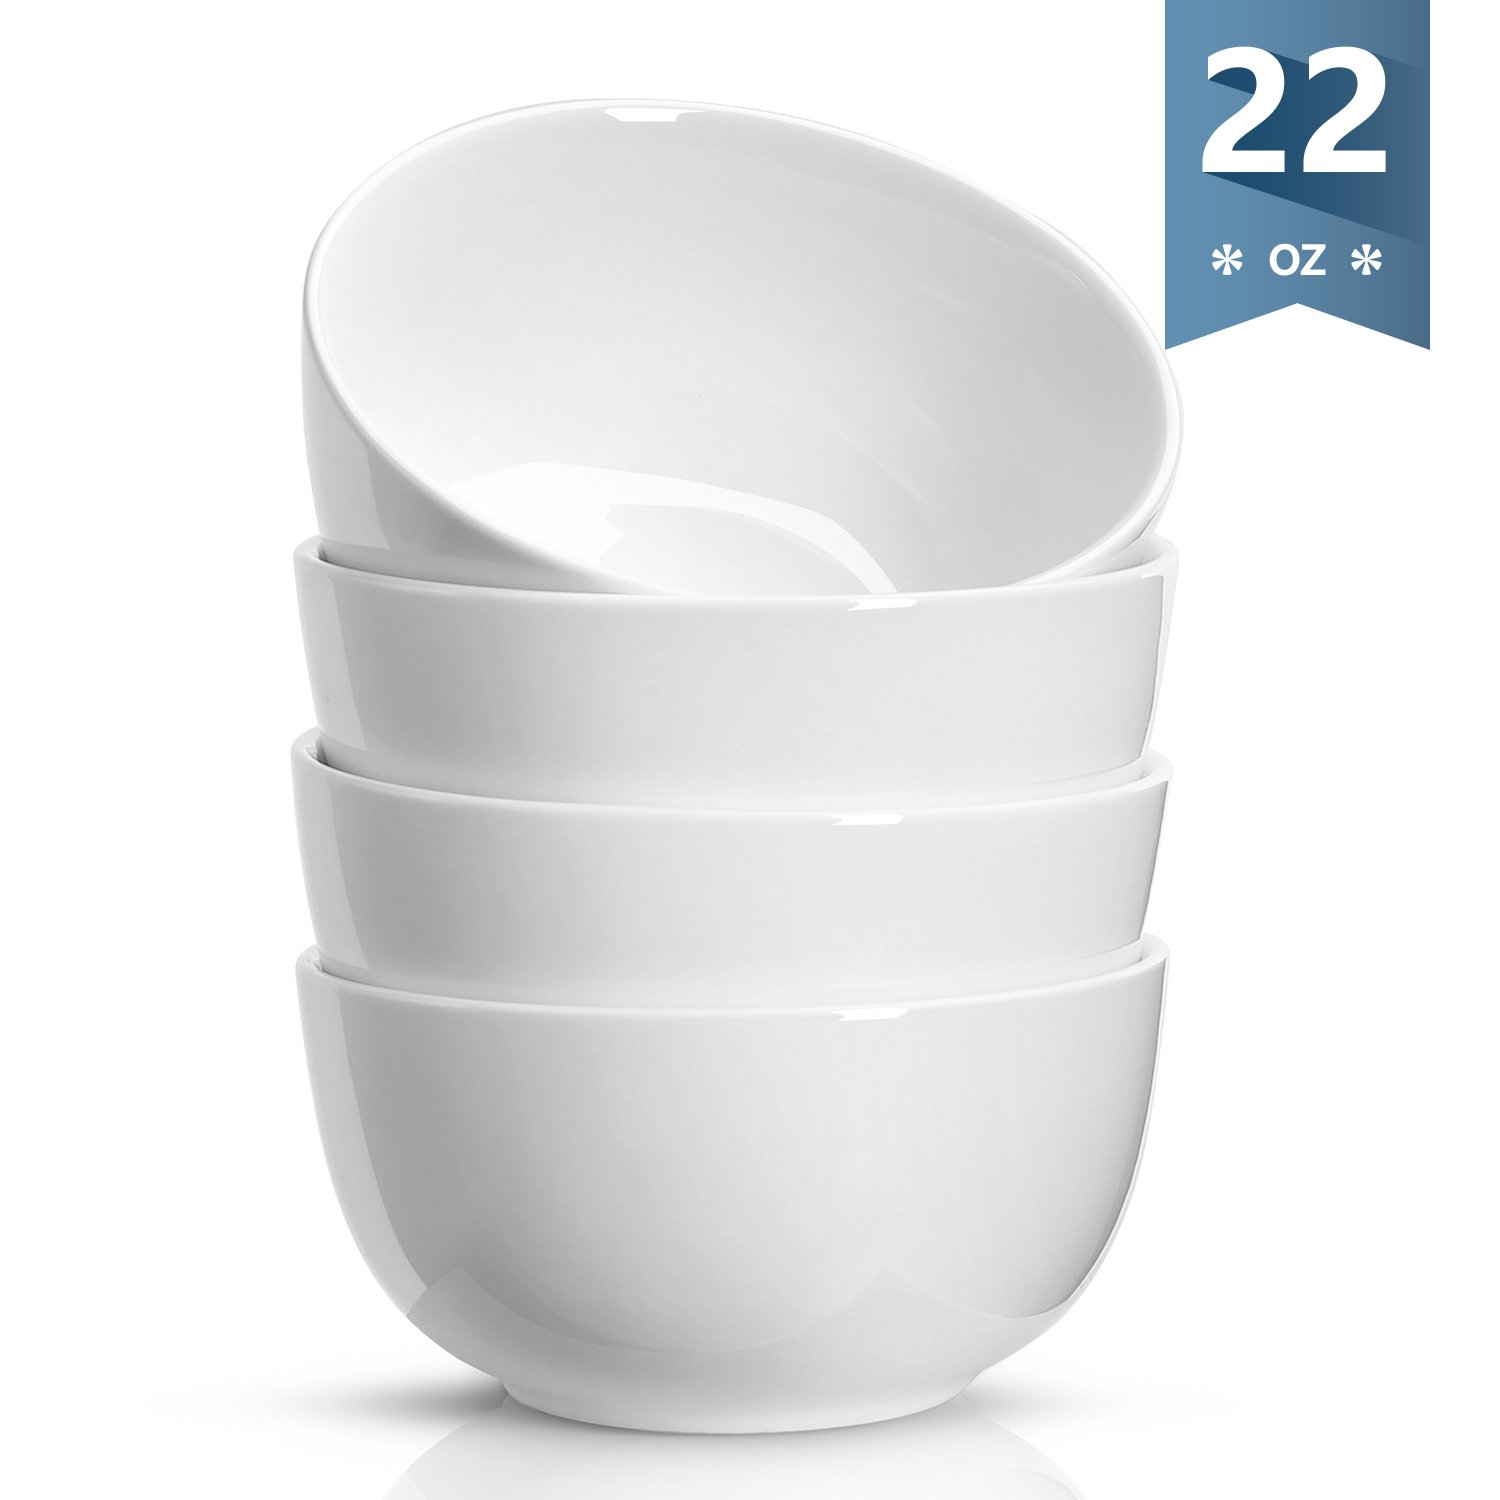 Sweese 1132 Porcelain Bowls - 22 Ounce for Cereal, Soup, Rice, Salad - Set of 4, White